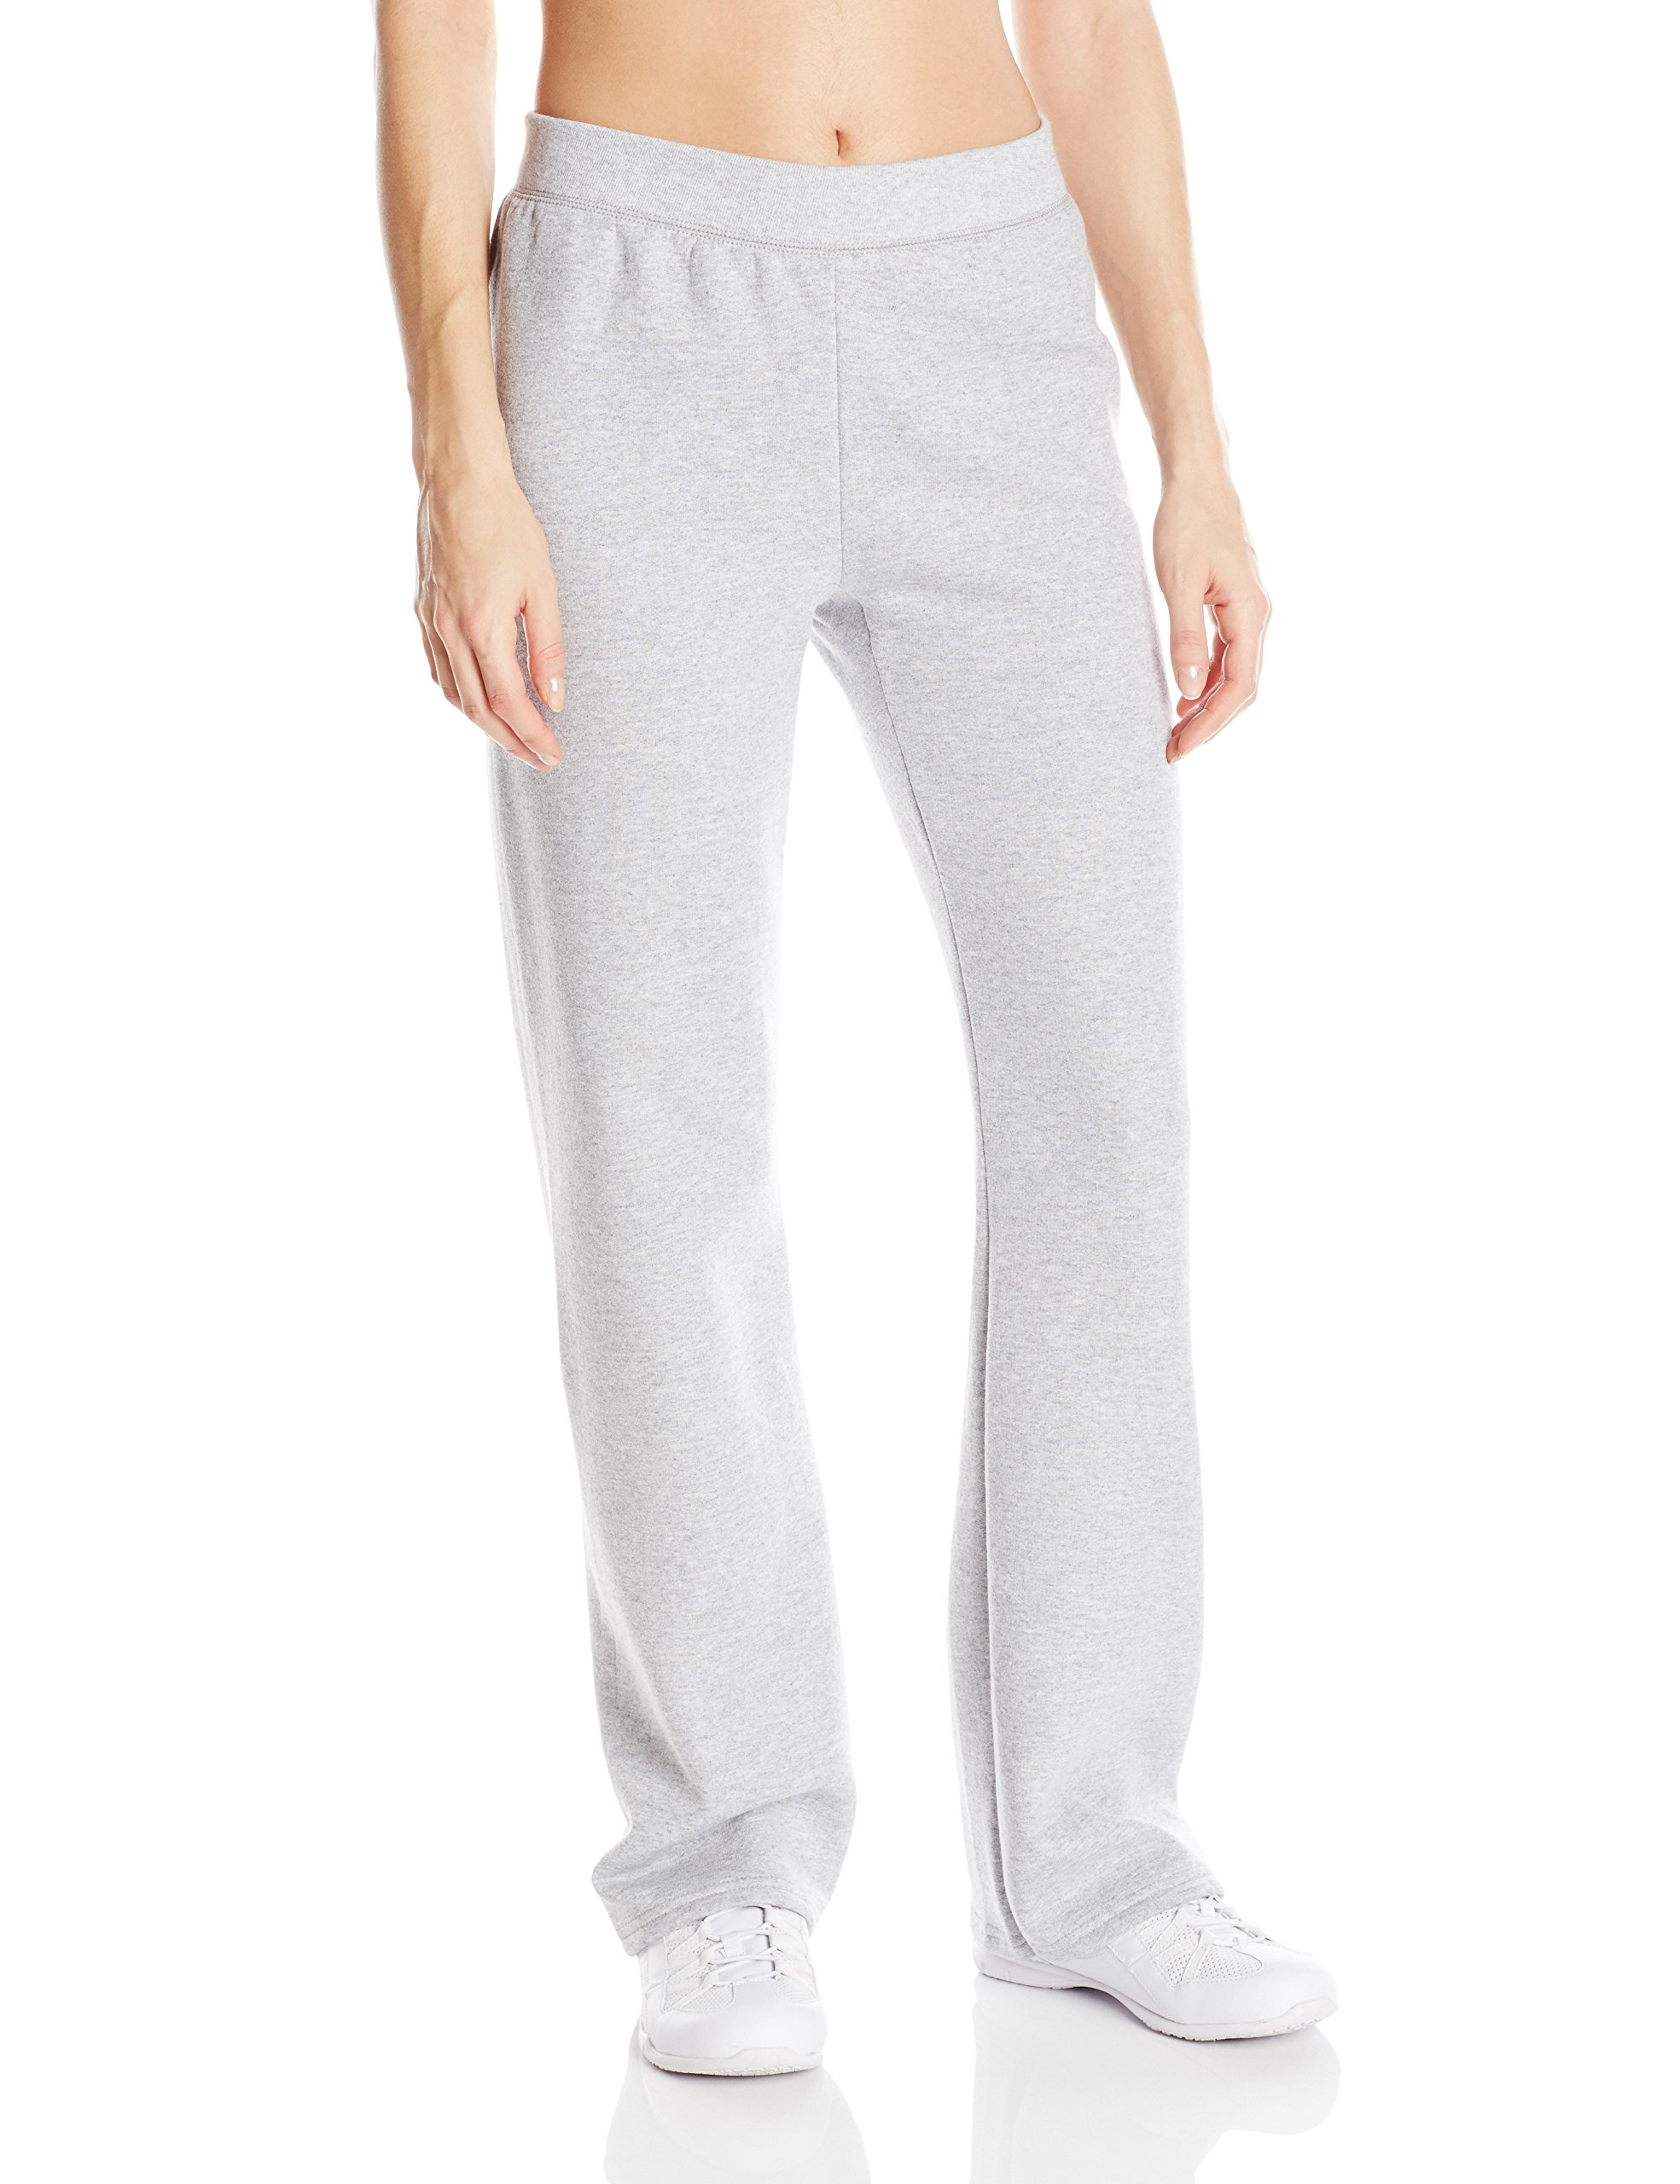 3637216528a Galleon - Hanes Women s Middle Rise Sweatpant